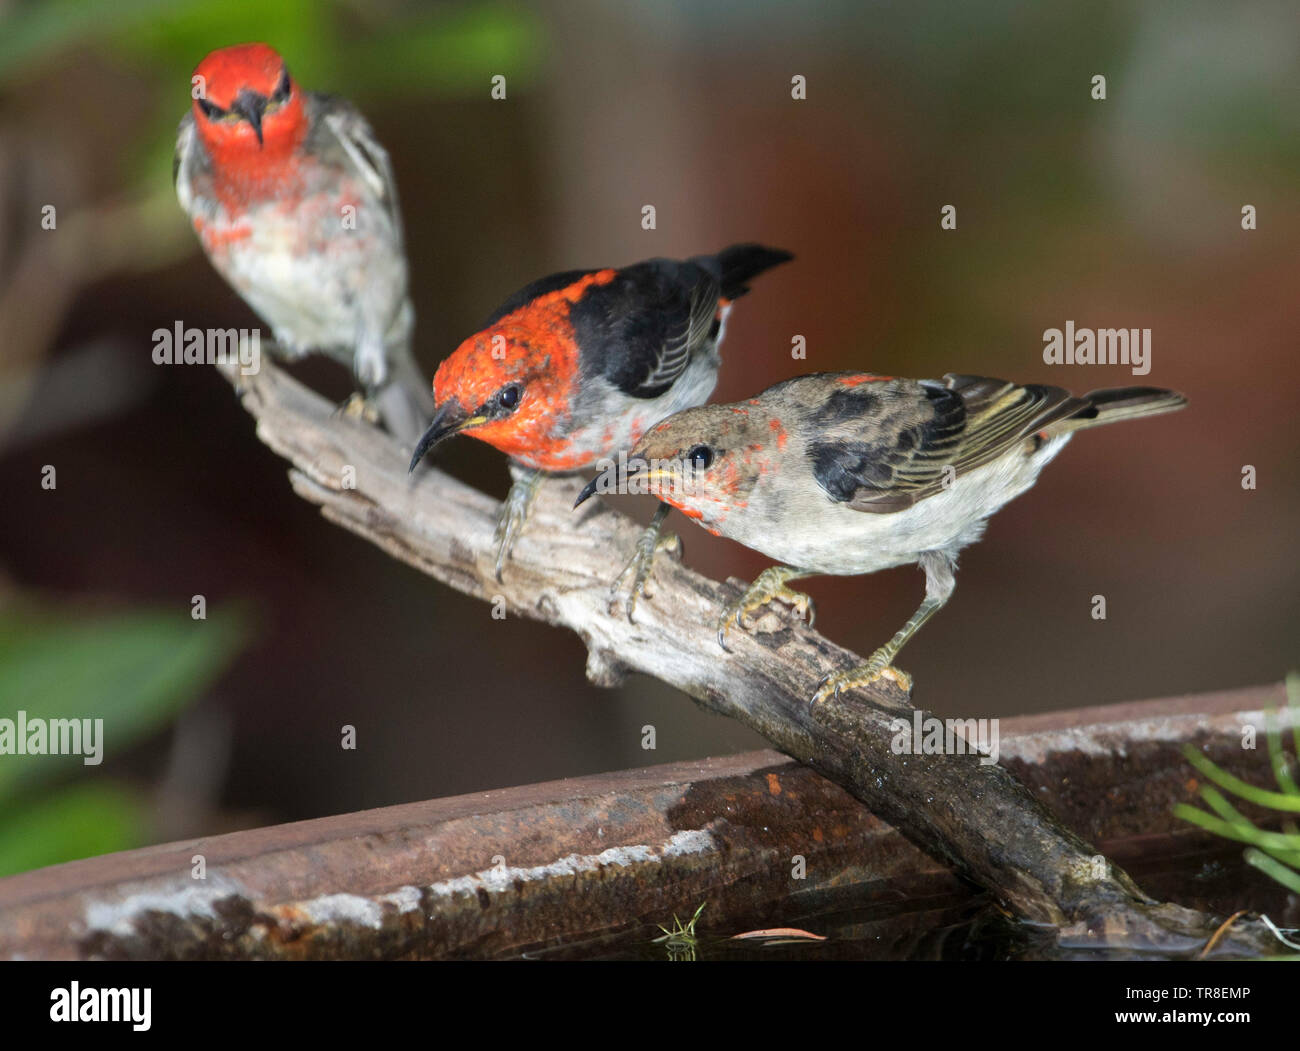 Three stunning black and red male Australian Scarlet Honeyeaters, Myzomela sanguinolenta, at garden bird bath - Stock Image